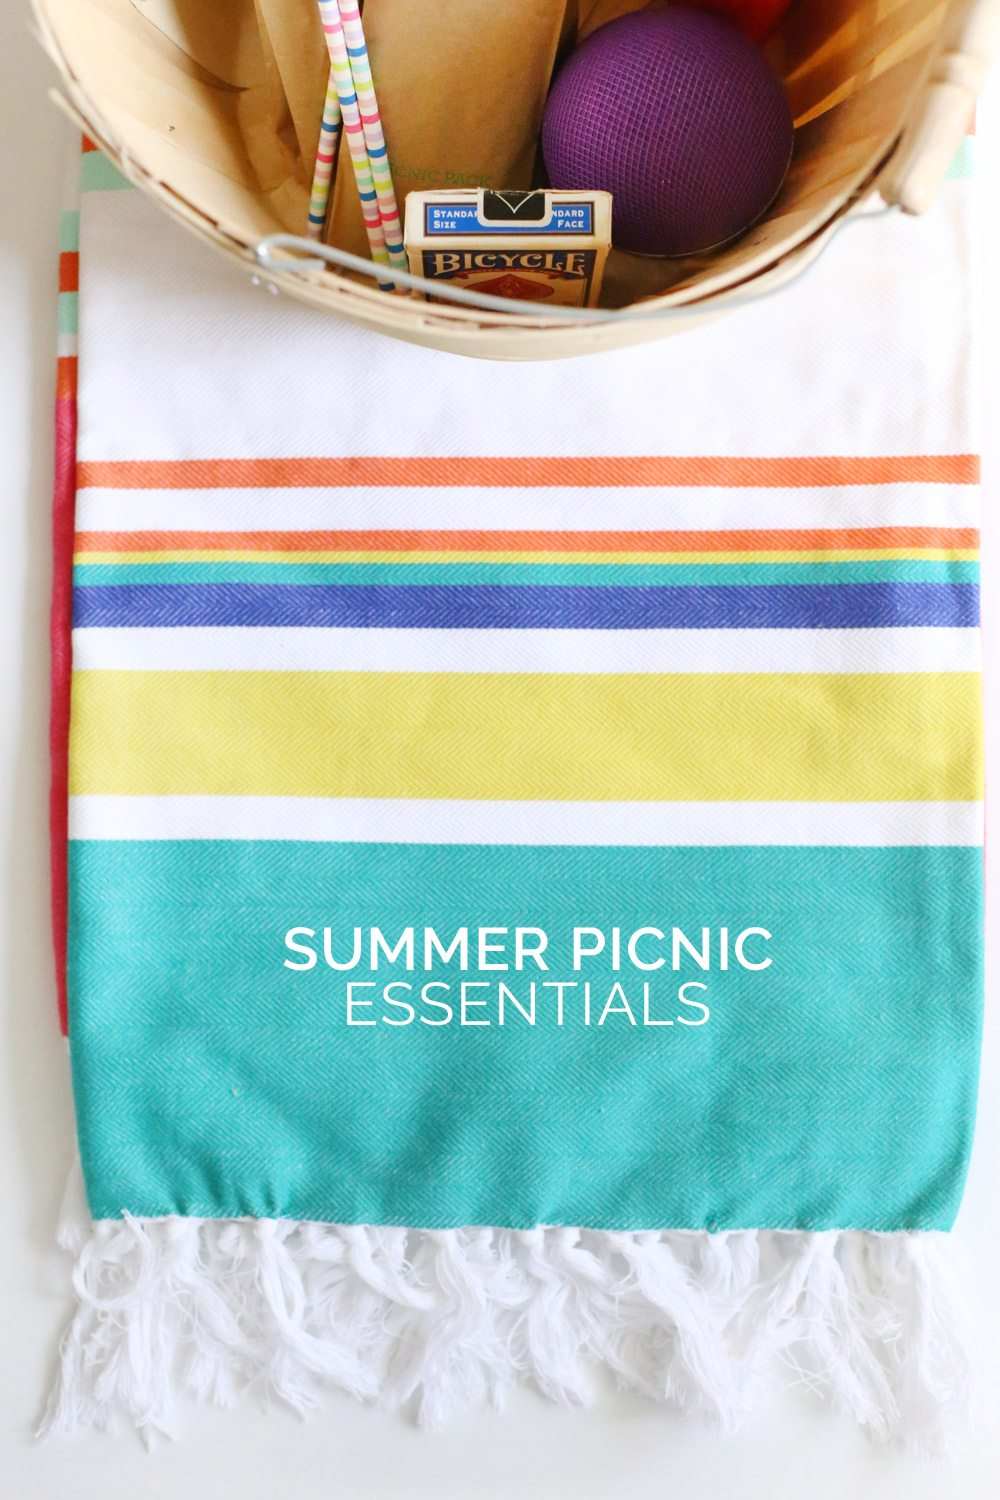 Summer Picnic Essentials from @cydconverse